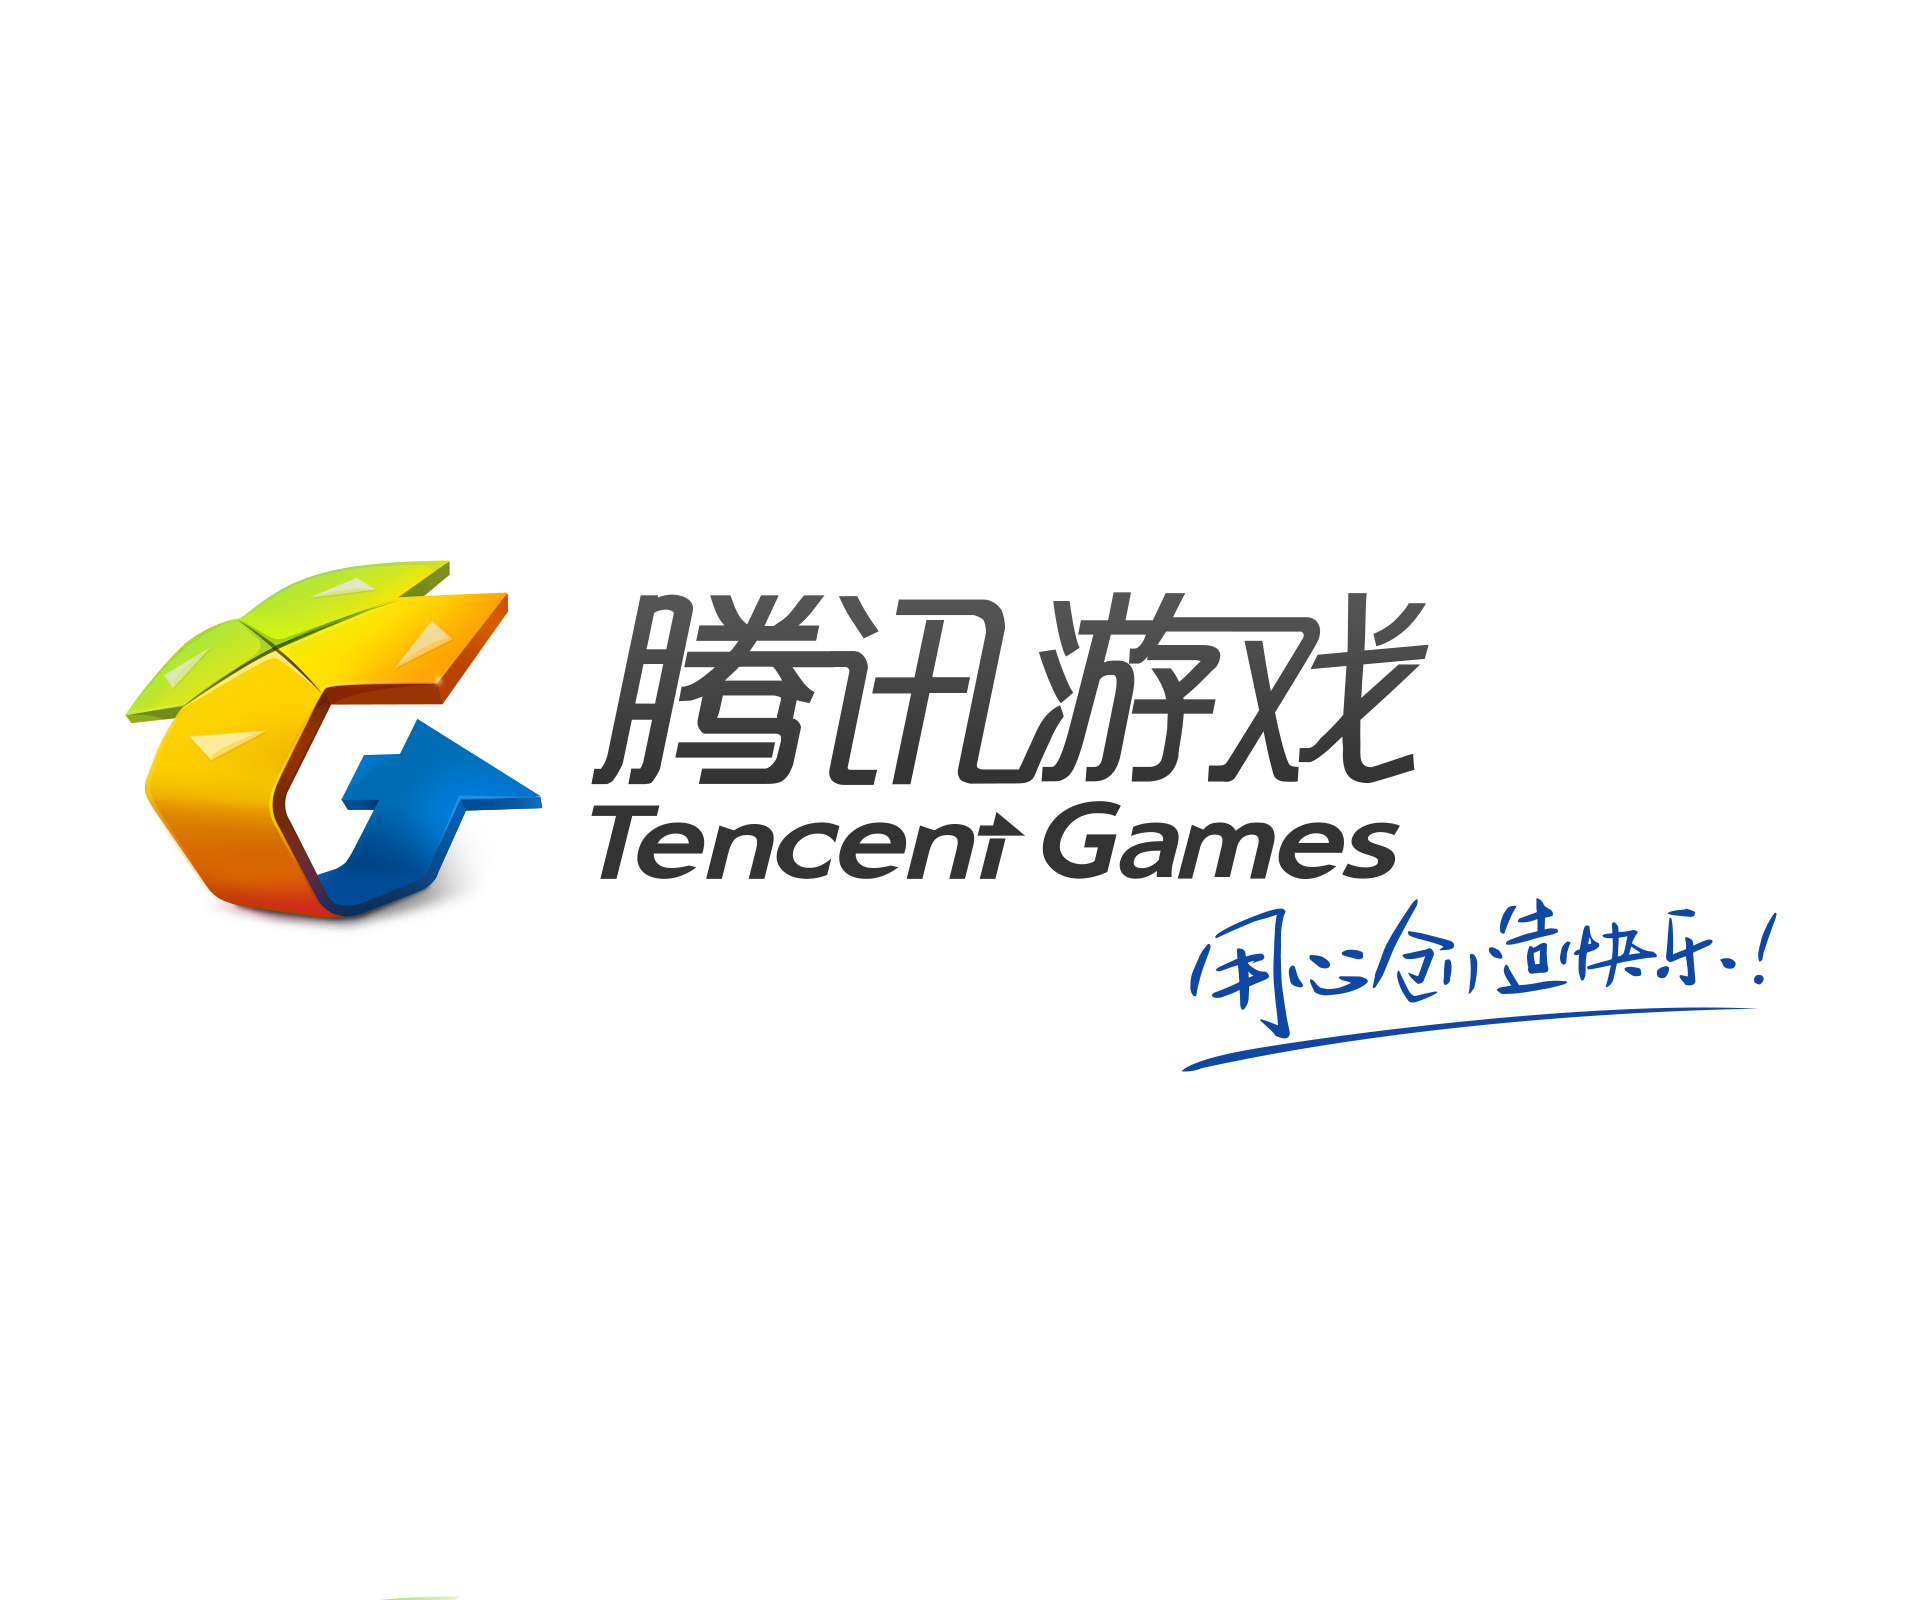 Tencent Games's logo